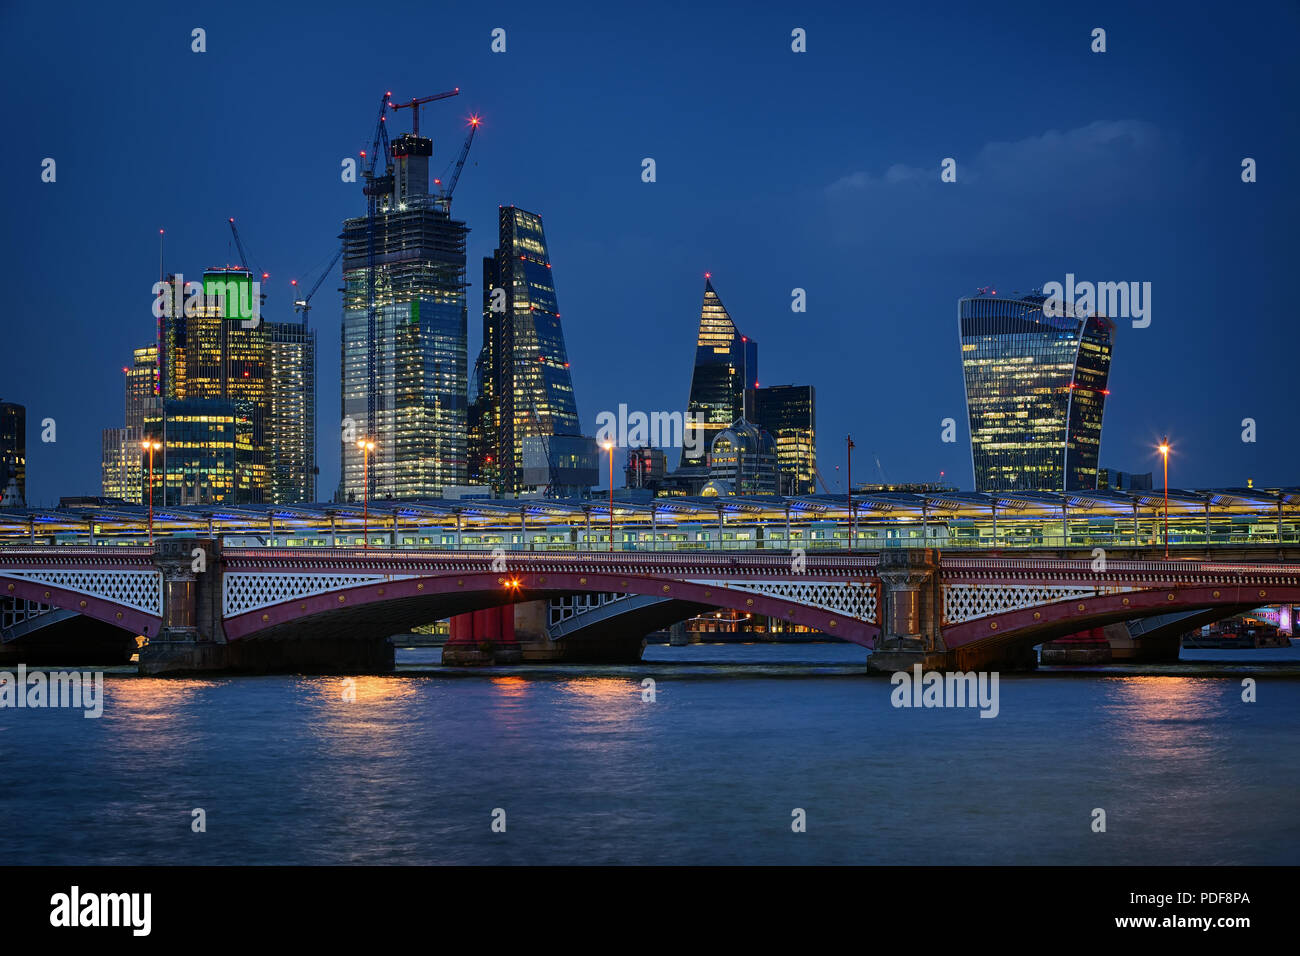 Blackfriars Bridge and the City of London at night in August 2018 - Stock Image